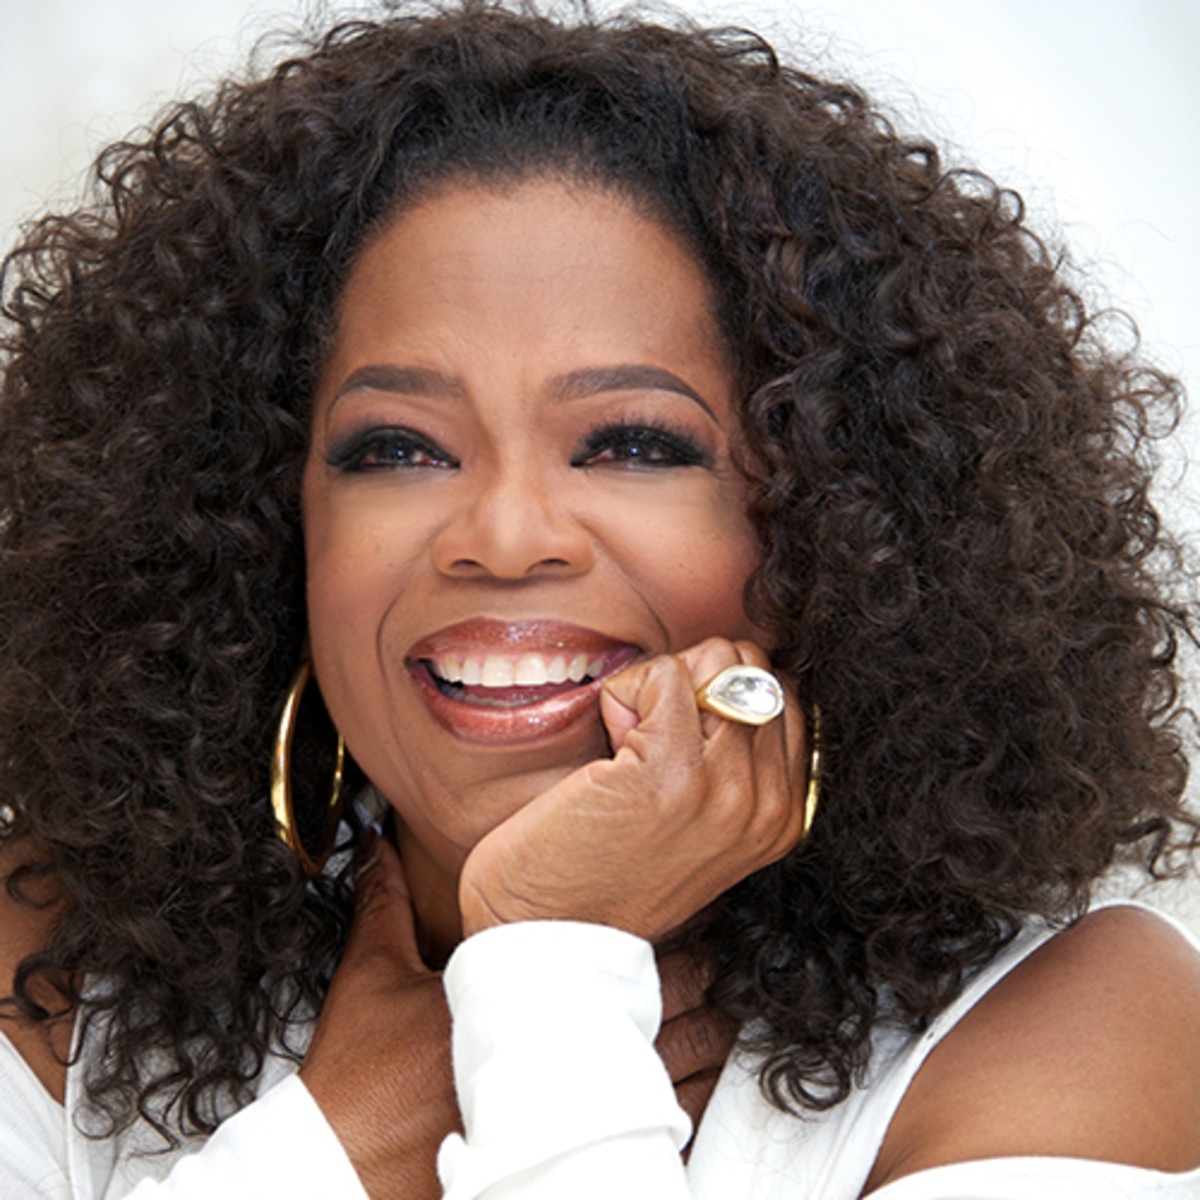 Oprah Winfrey is among the most influential black Americans in the world